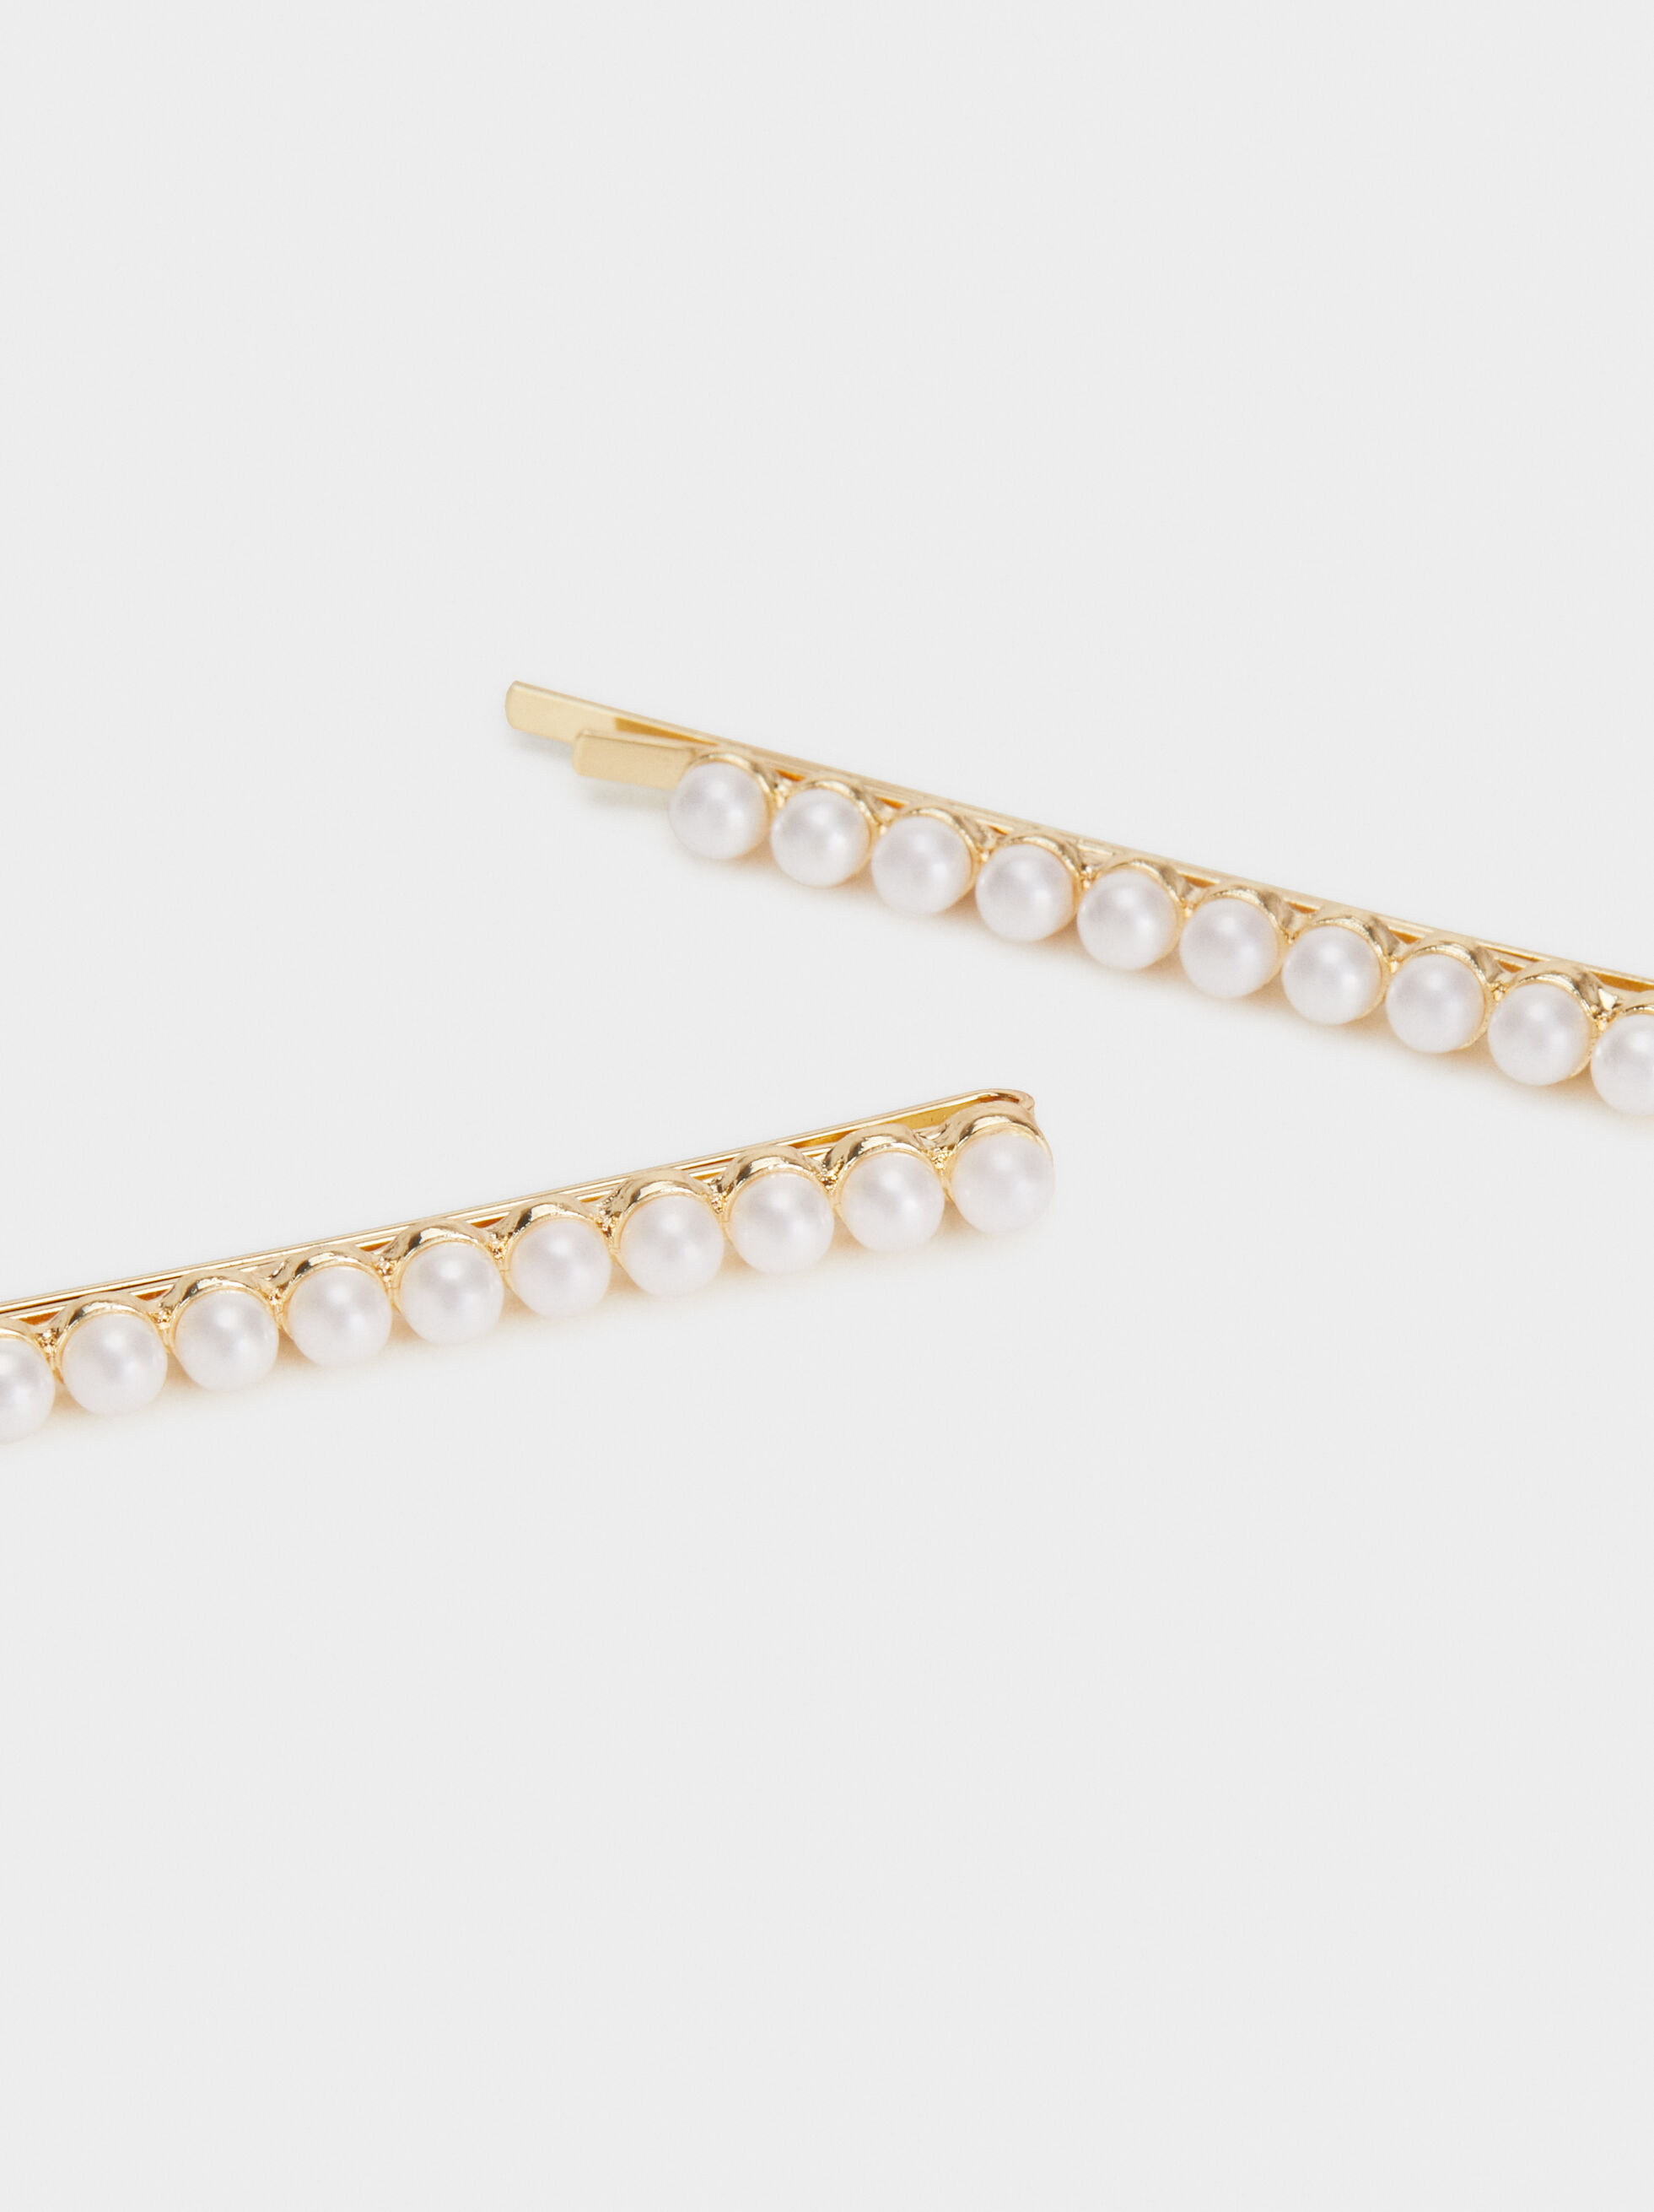 Pearl Bead Hair Slides, Golden, hi-res